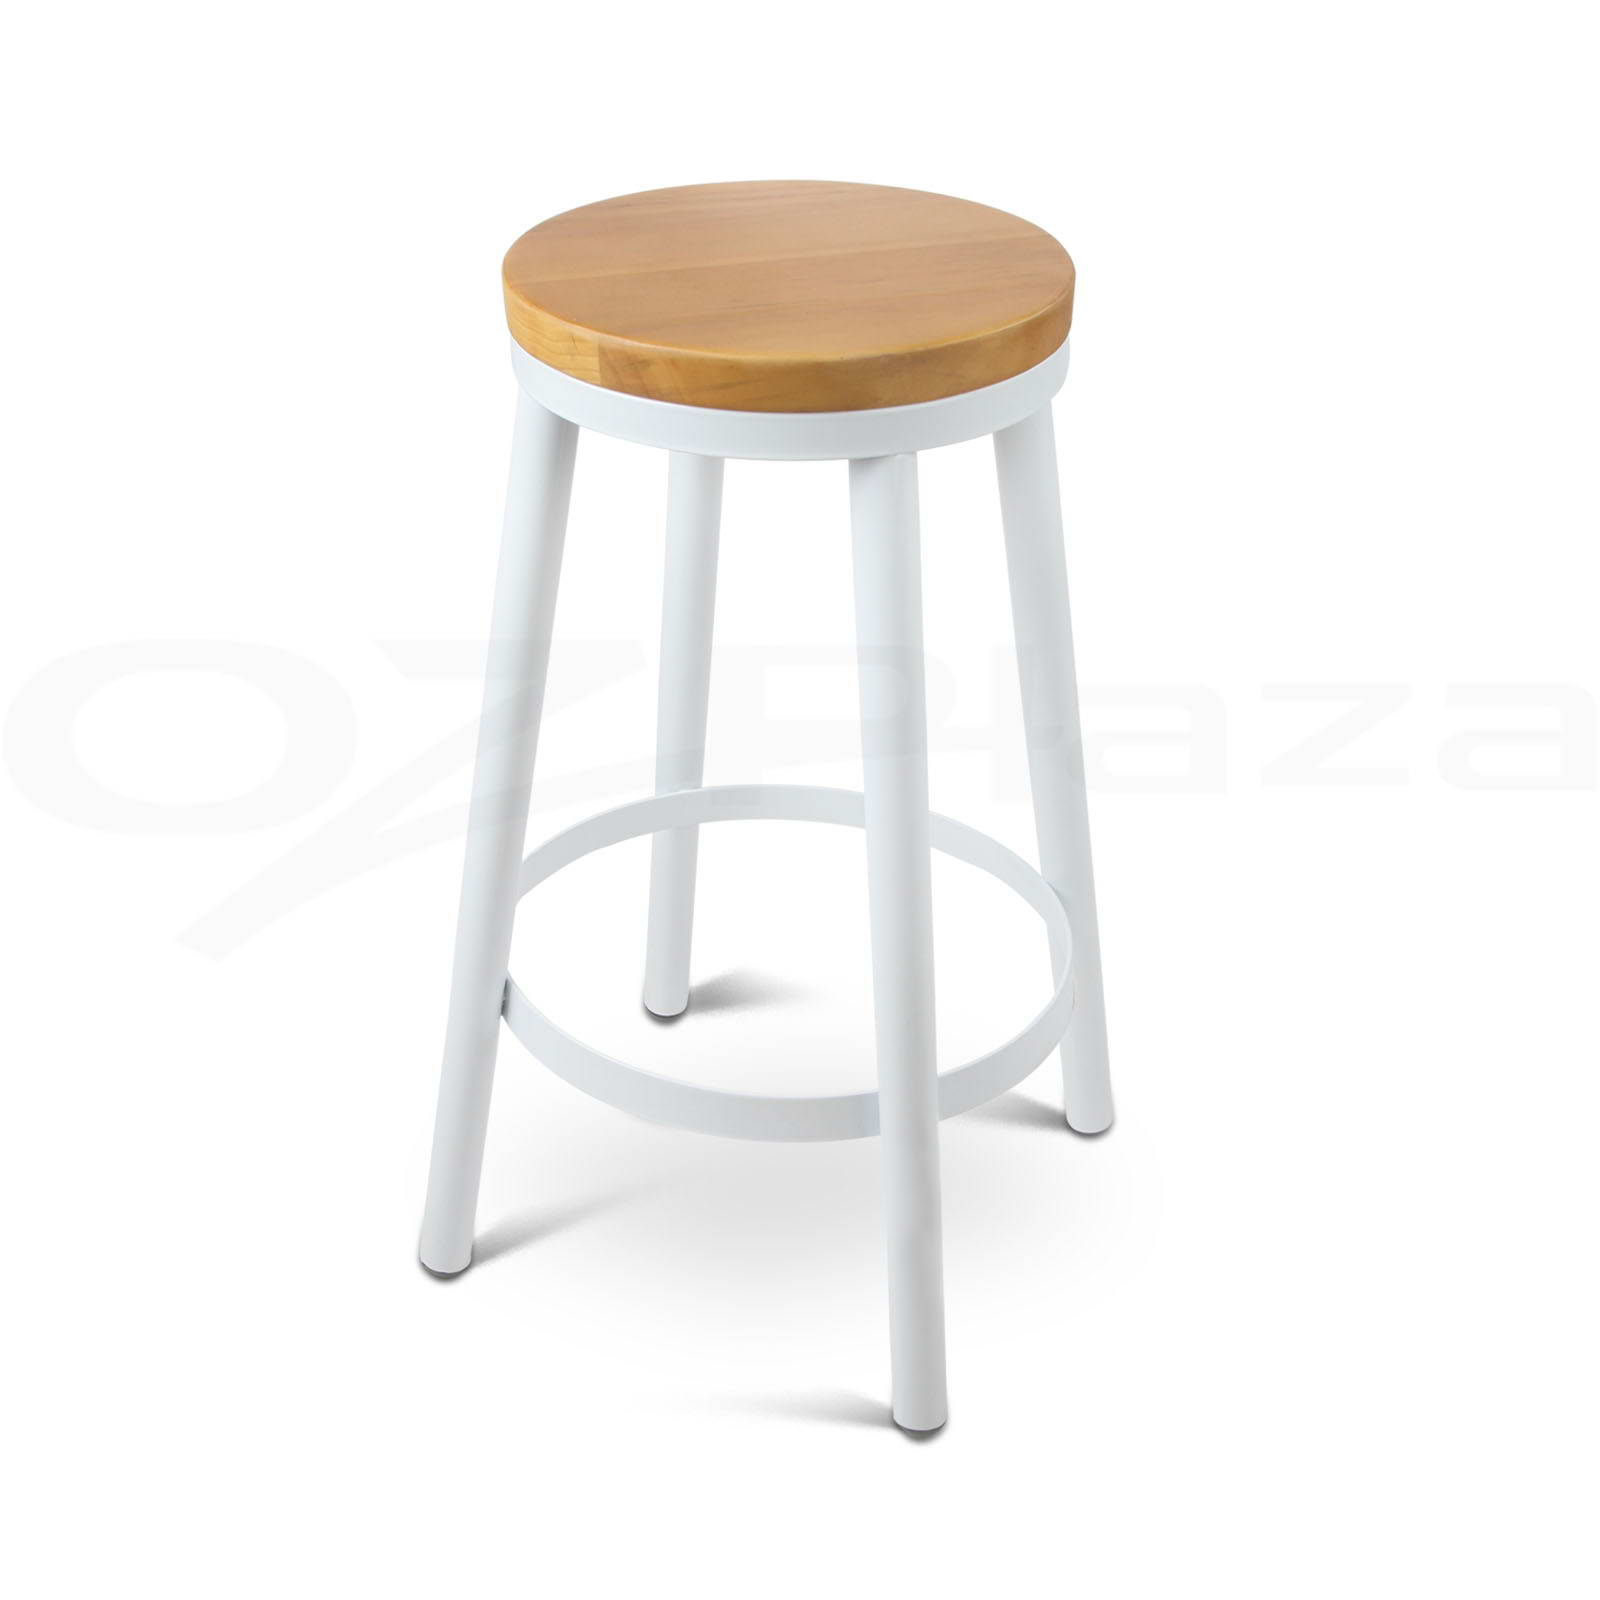 2x Danny Industrial Bar Stool Stackable Barstool Dining